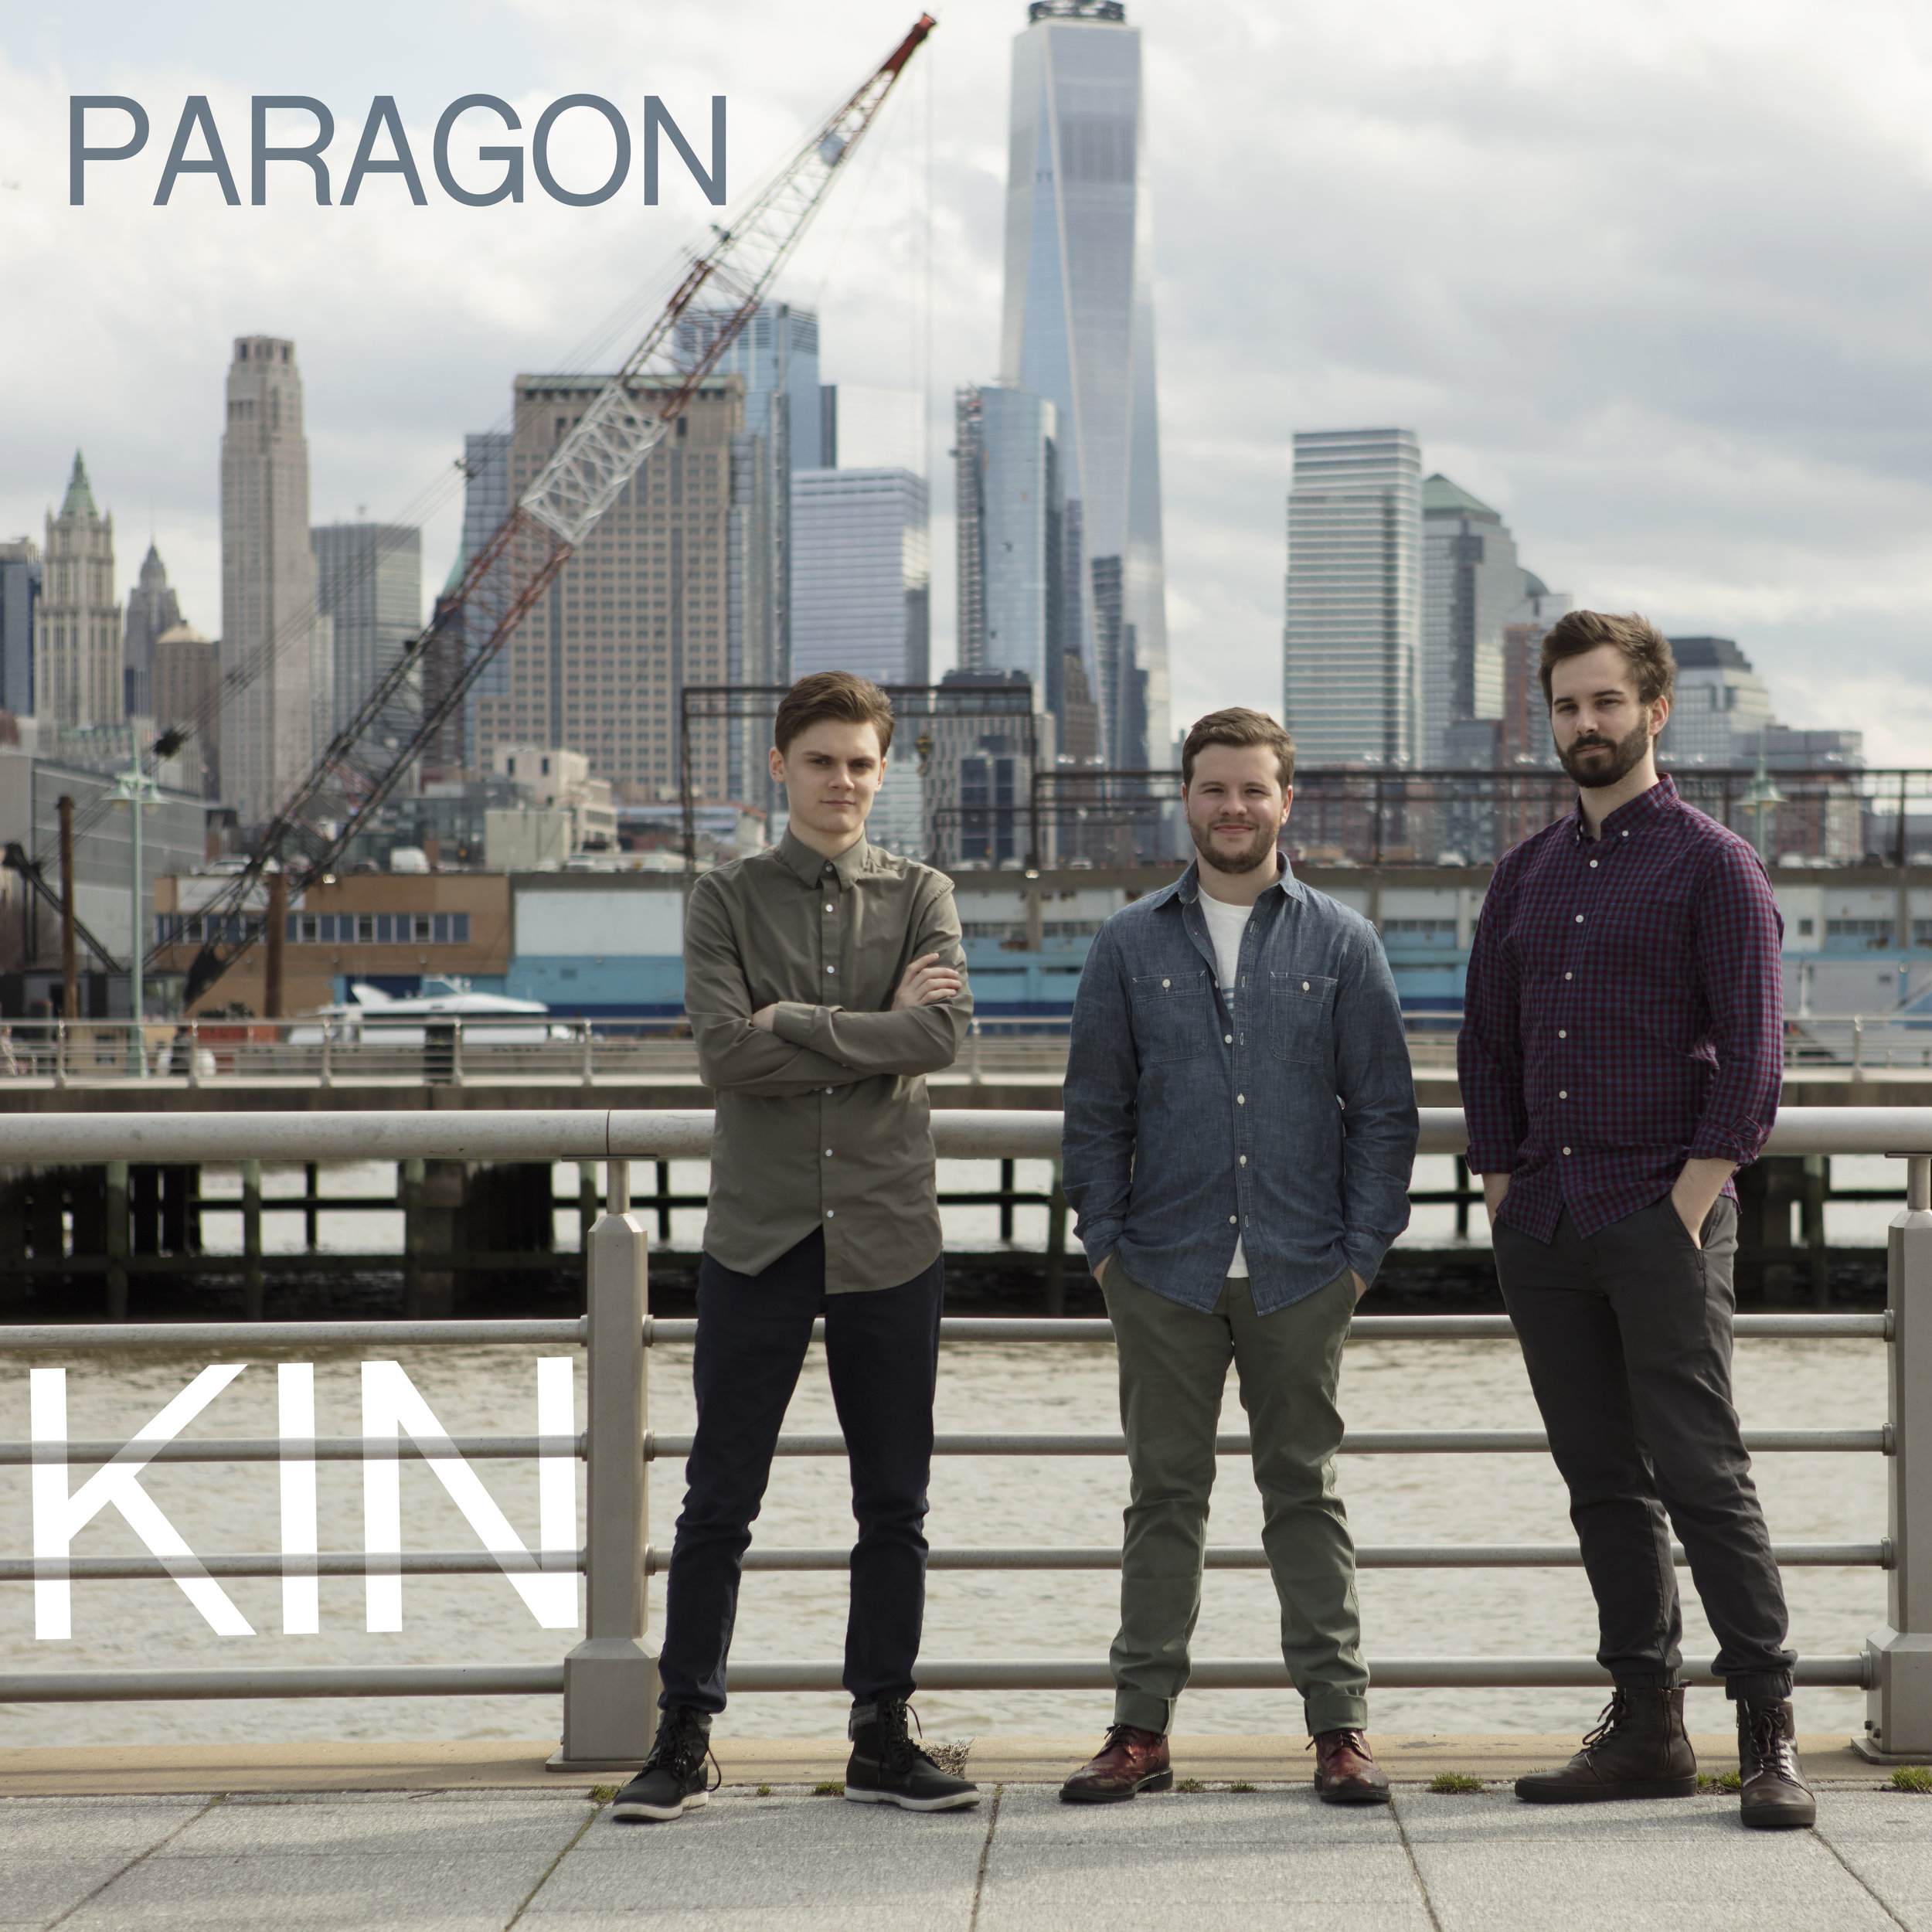 Paragon Kin Digital Album Cover .jpg